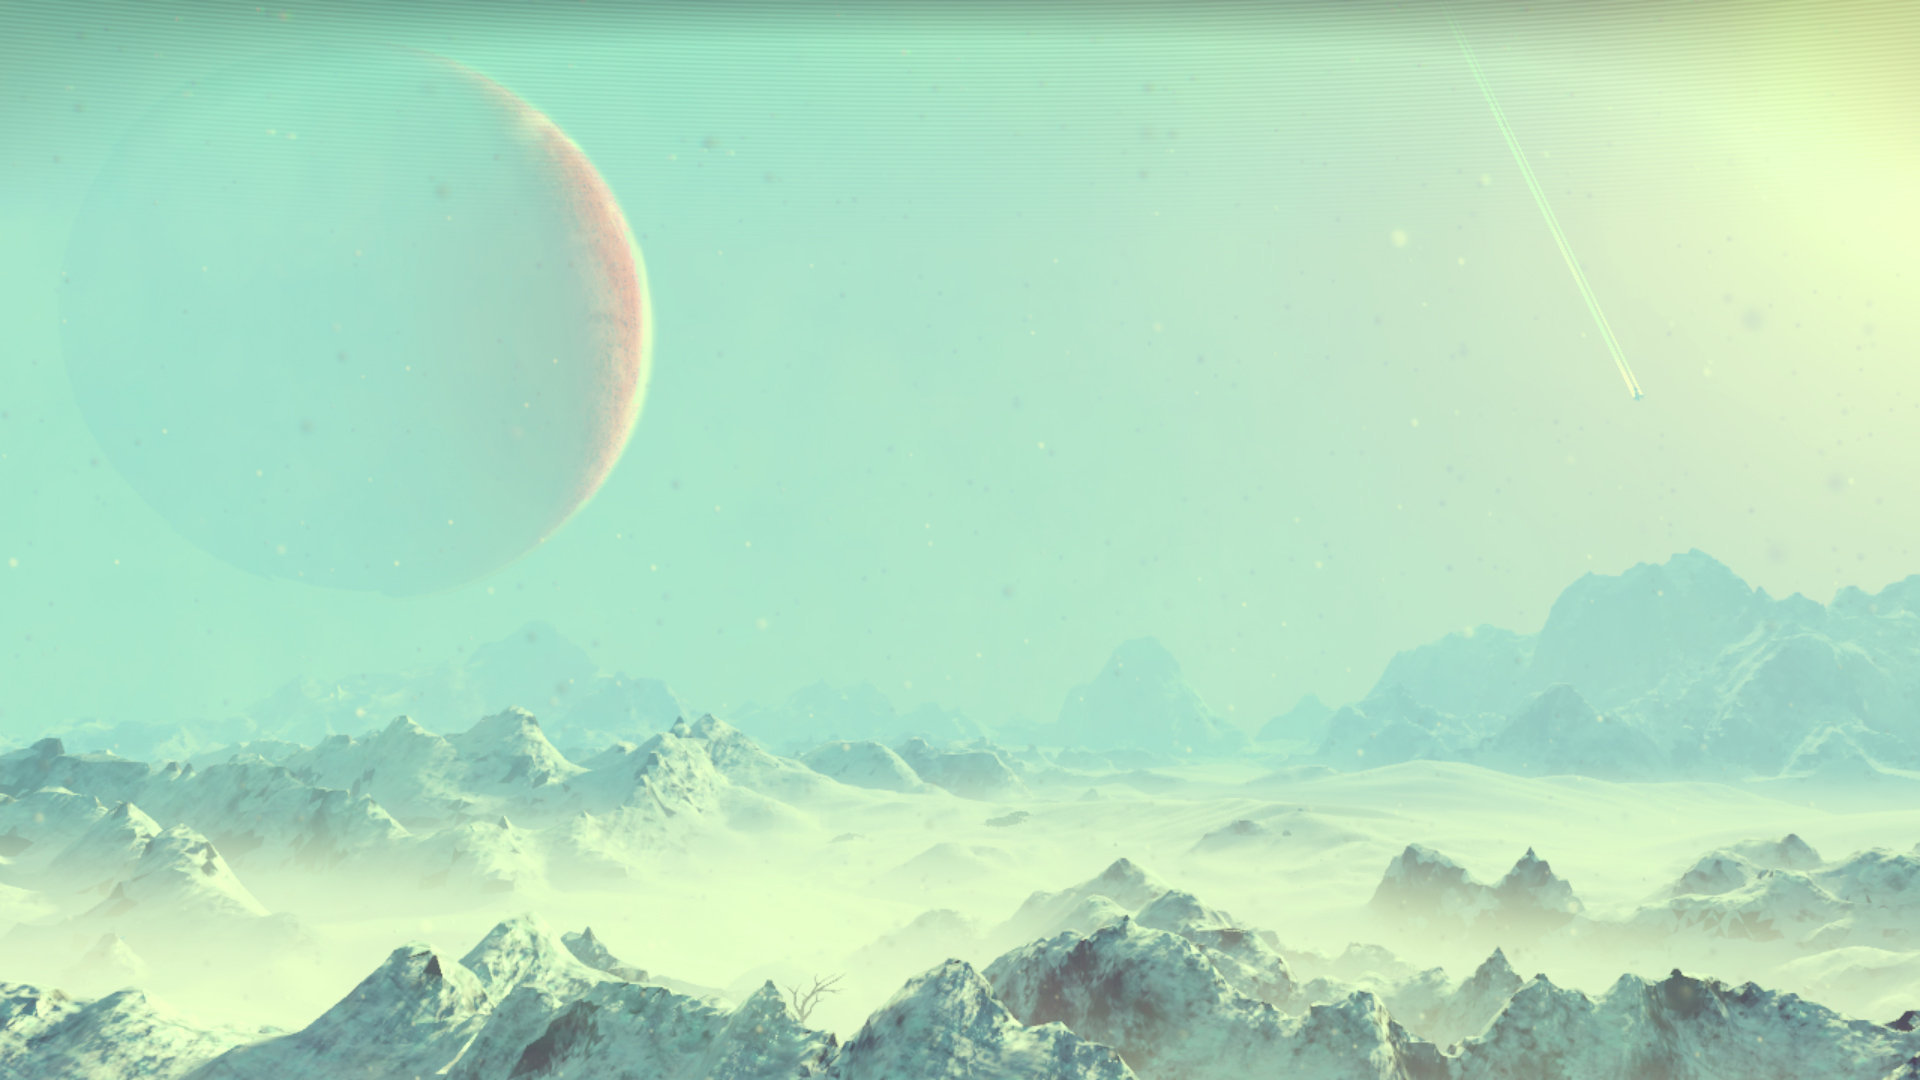 49 No Man S Sky Wallpaper 4k On Wallpapersafari